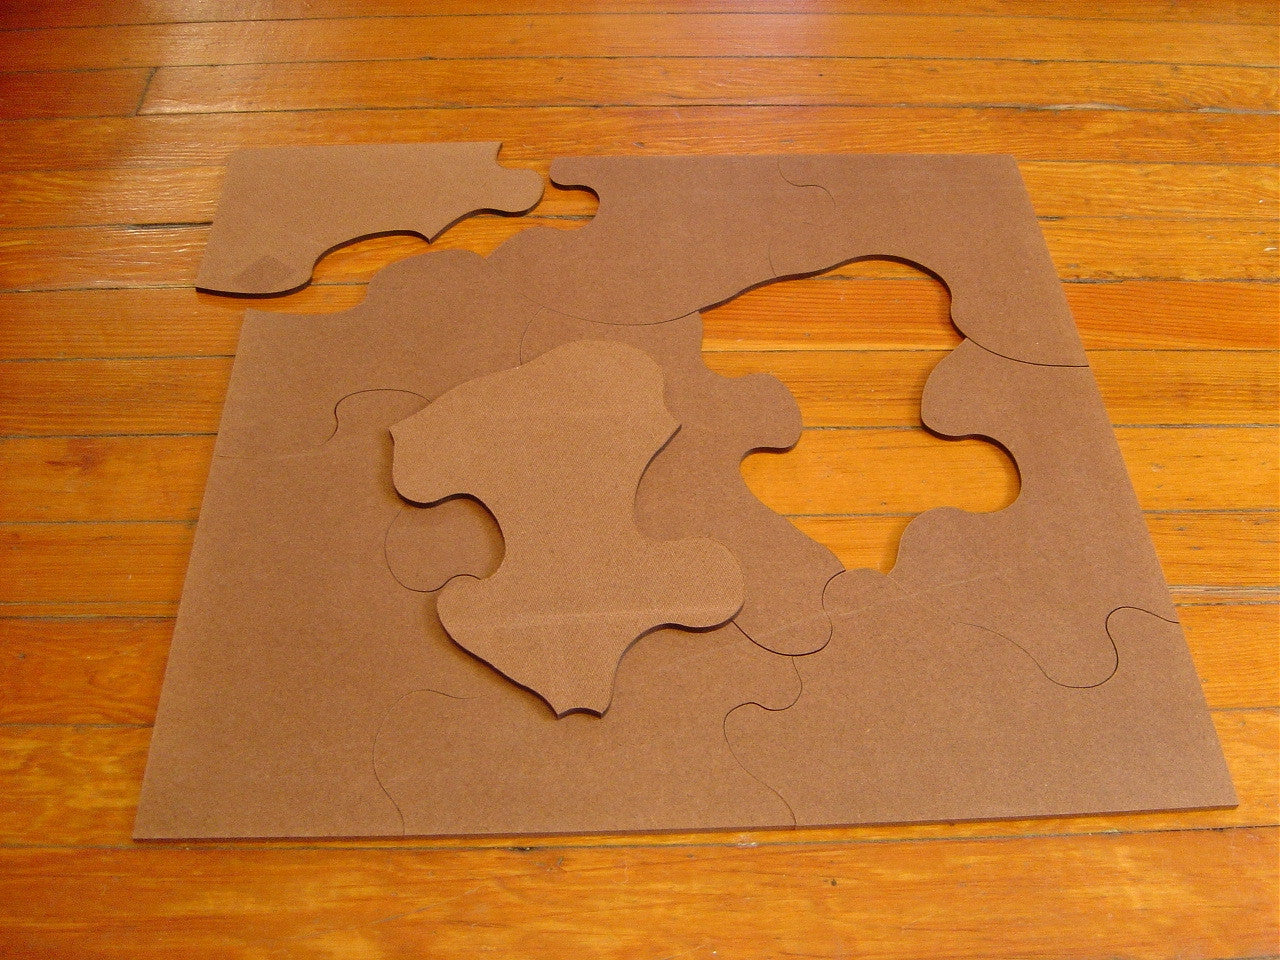 Blindfolded Giant Jigsaw Puzzle